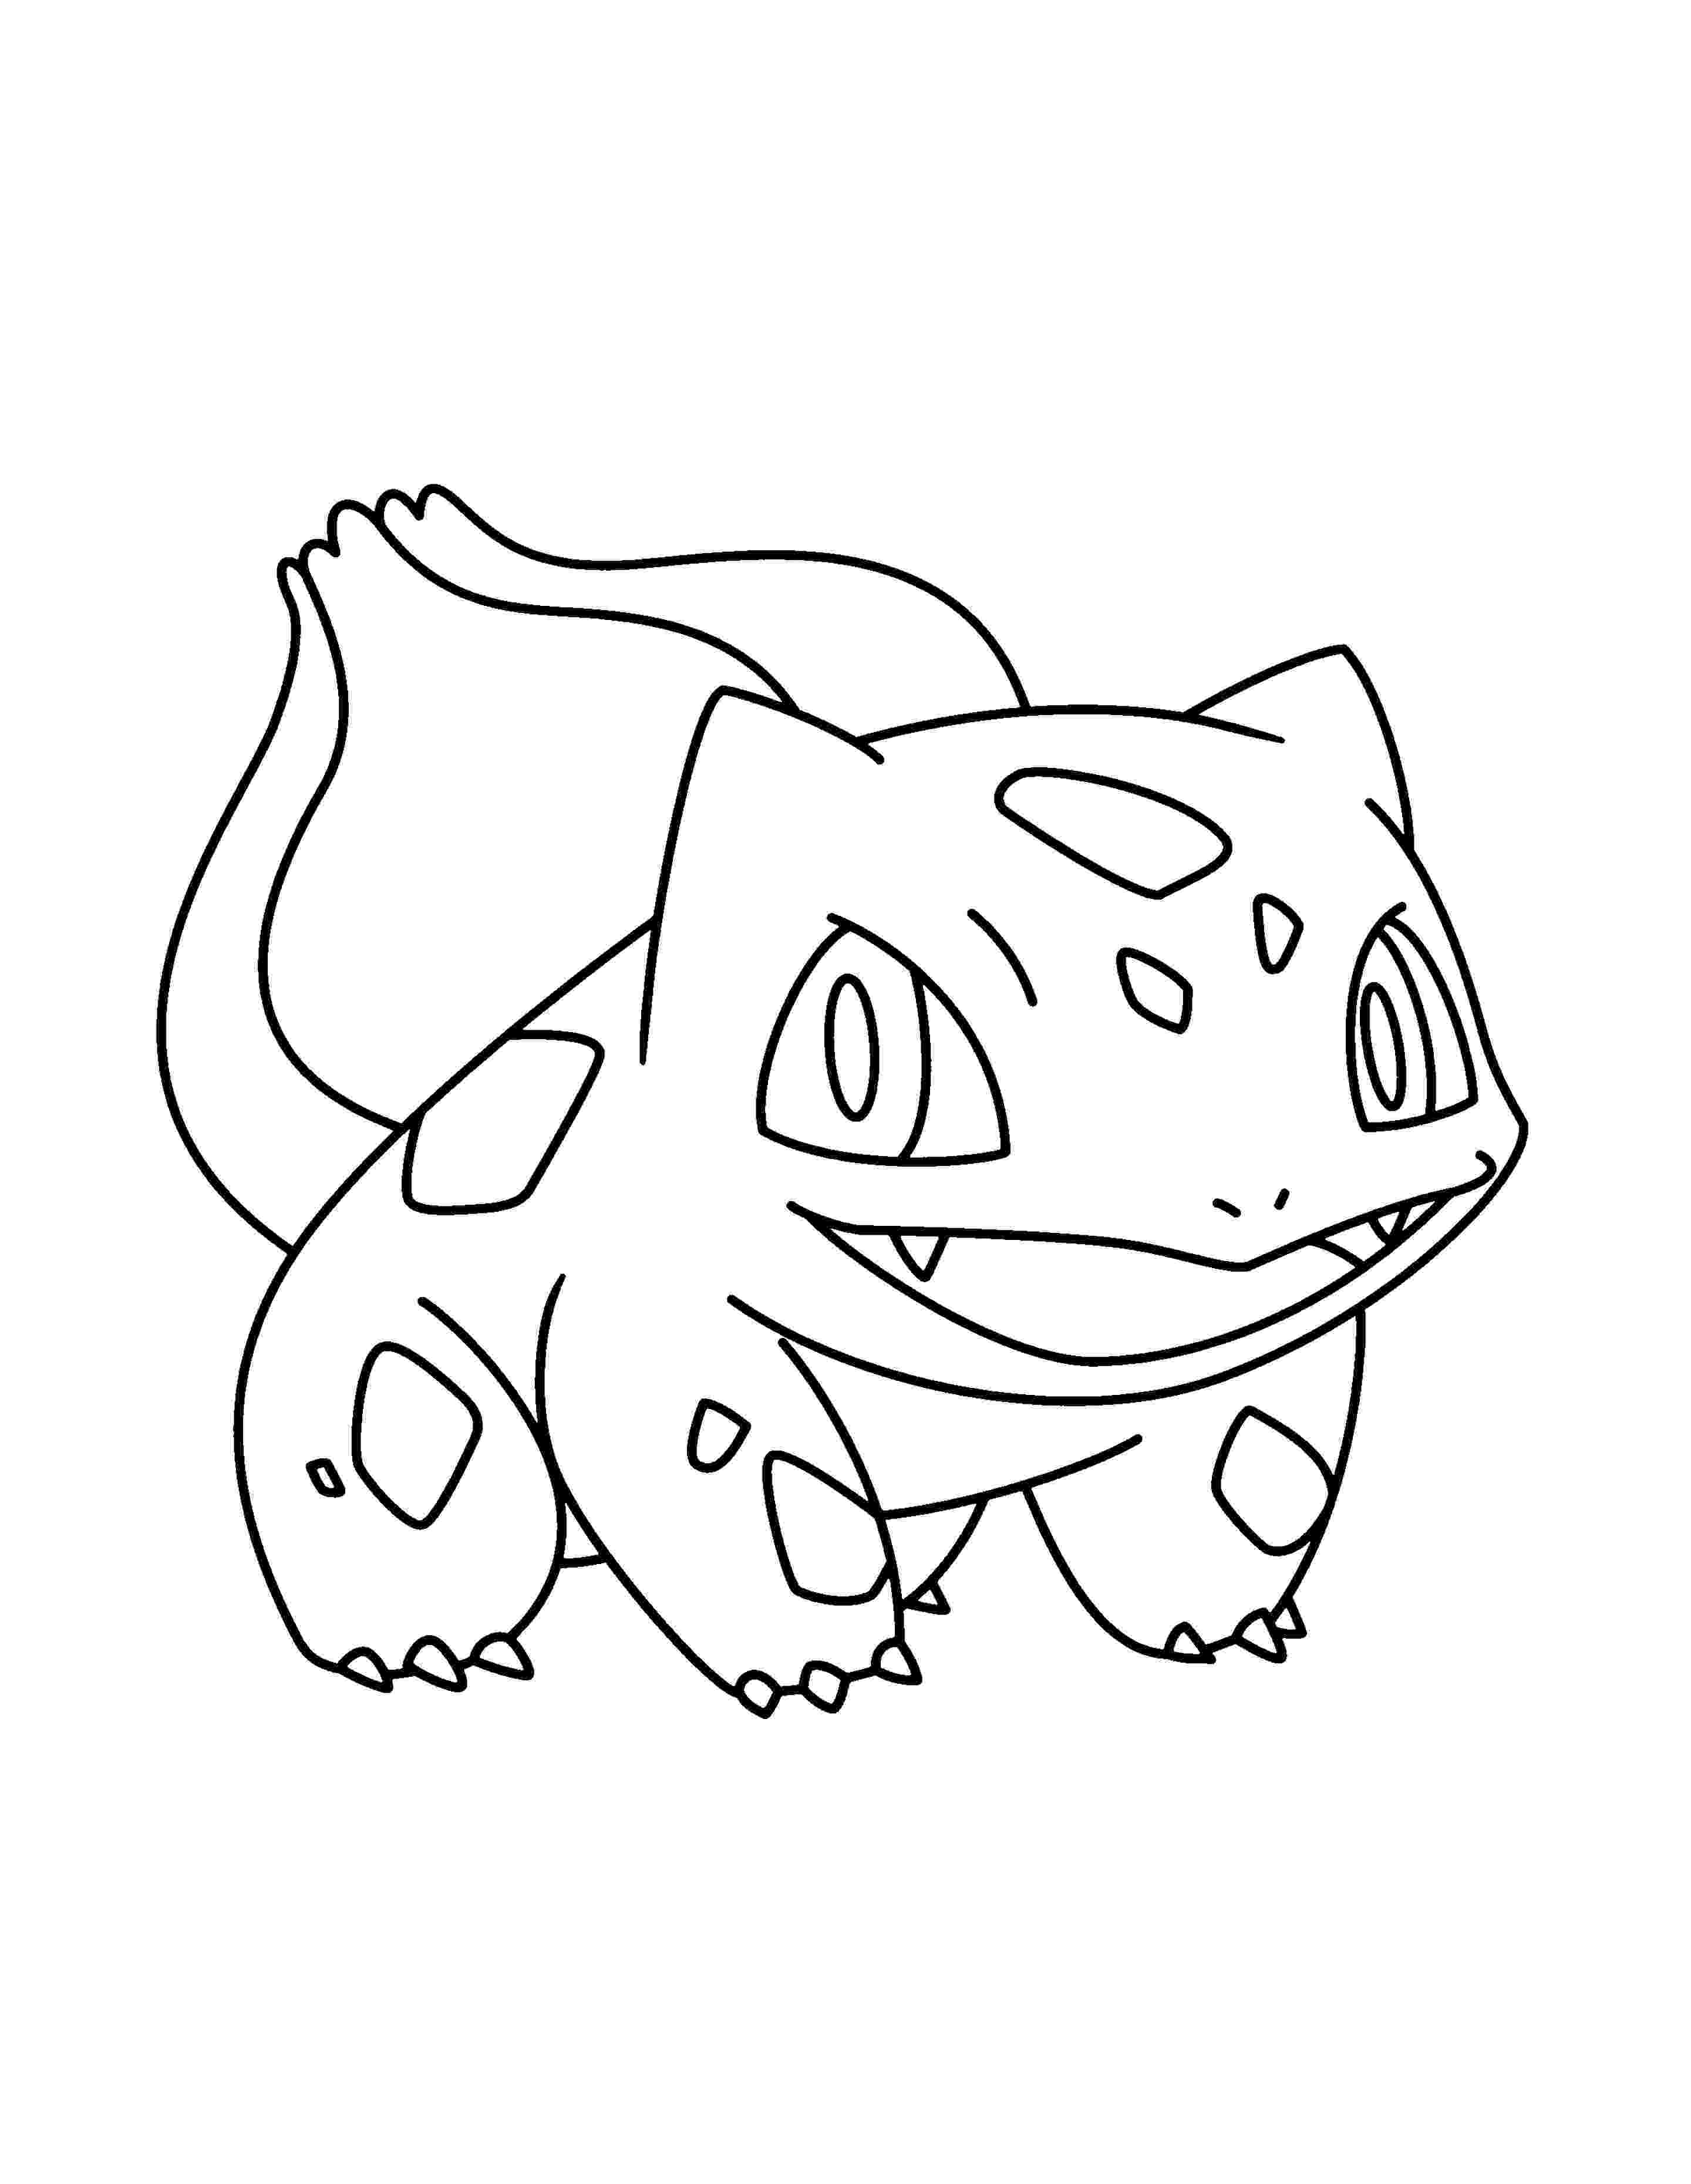 pokemon pictures from black and white pokemon black and white clipart clipground black pictures white pokemon and from